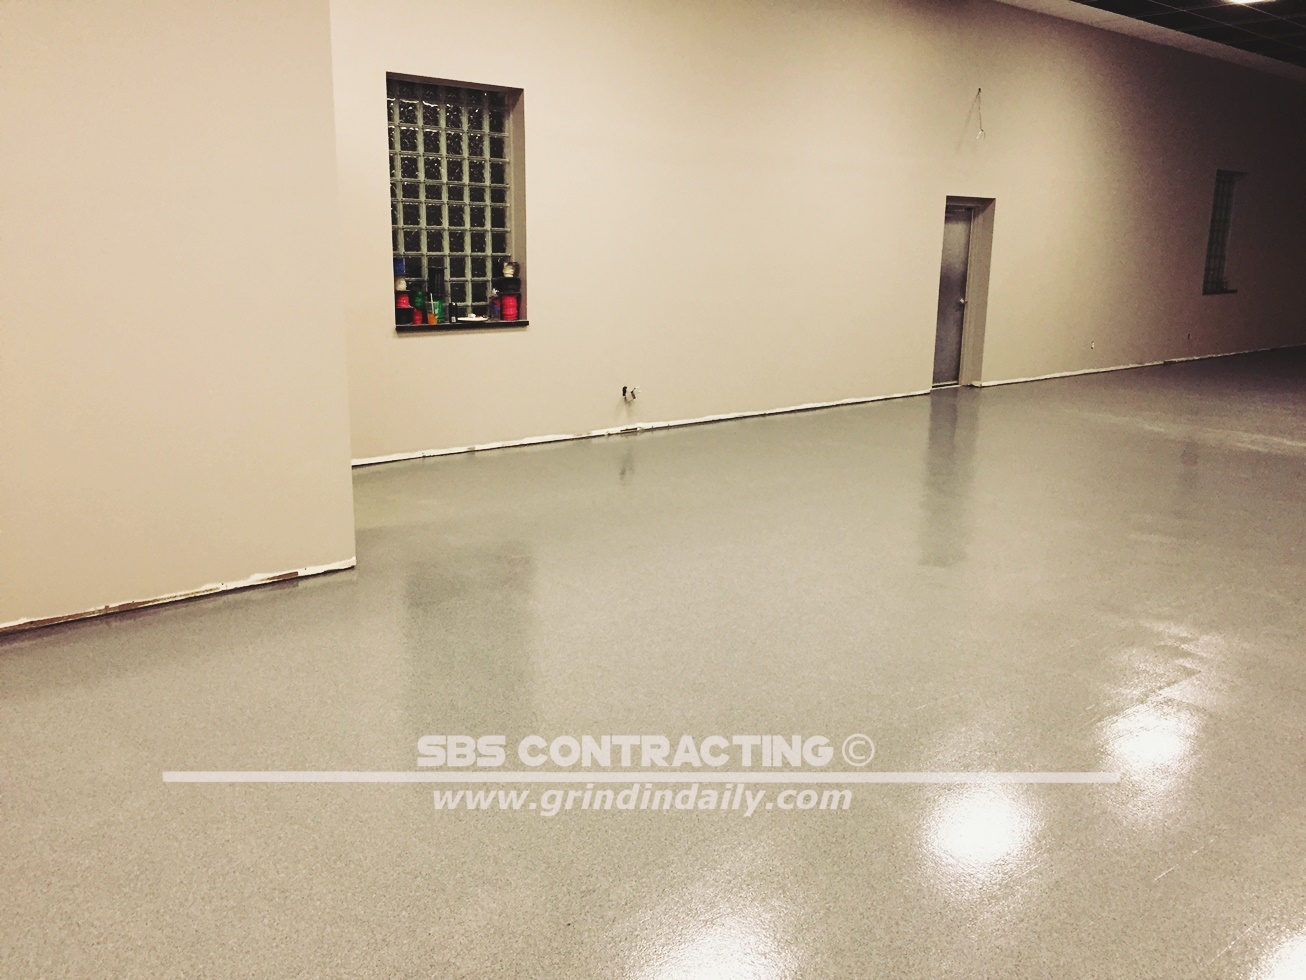 SBS-Contracting-Epoxy-Project-10-06